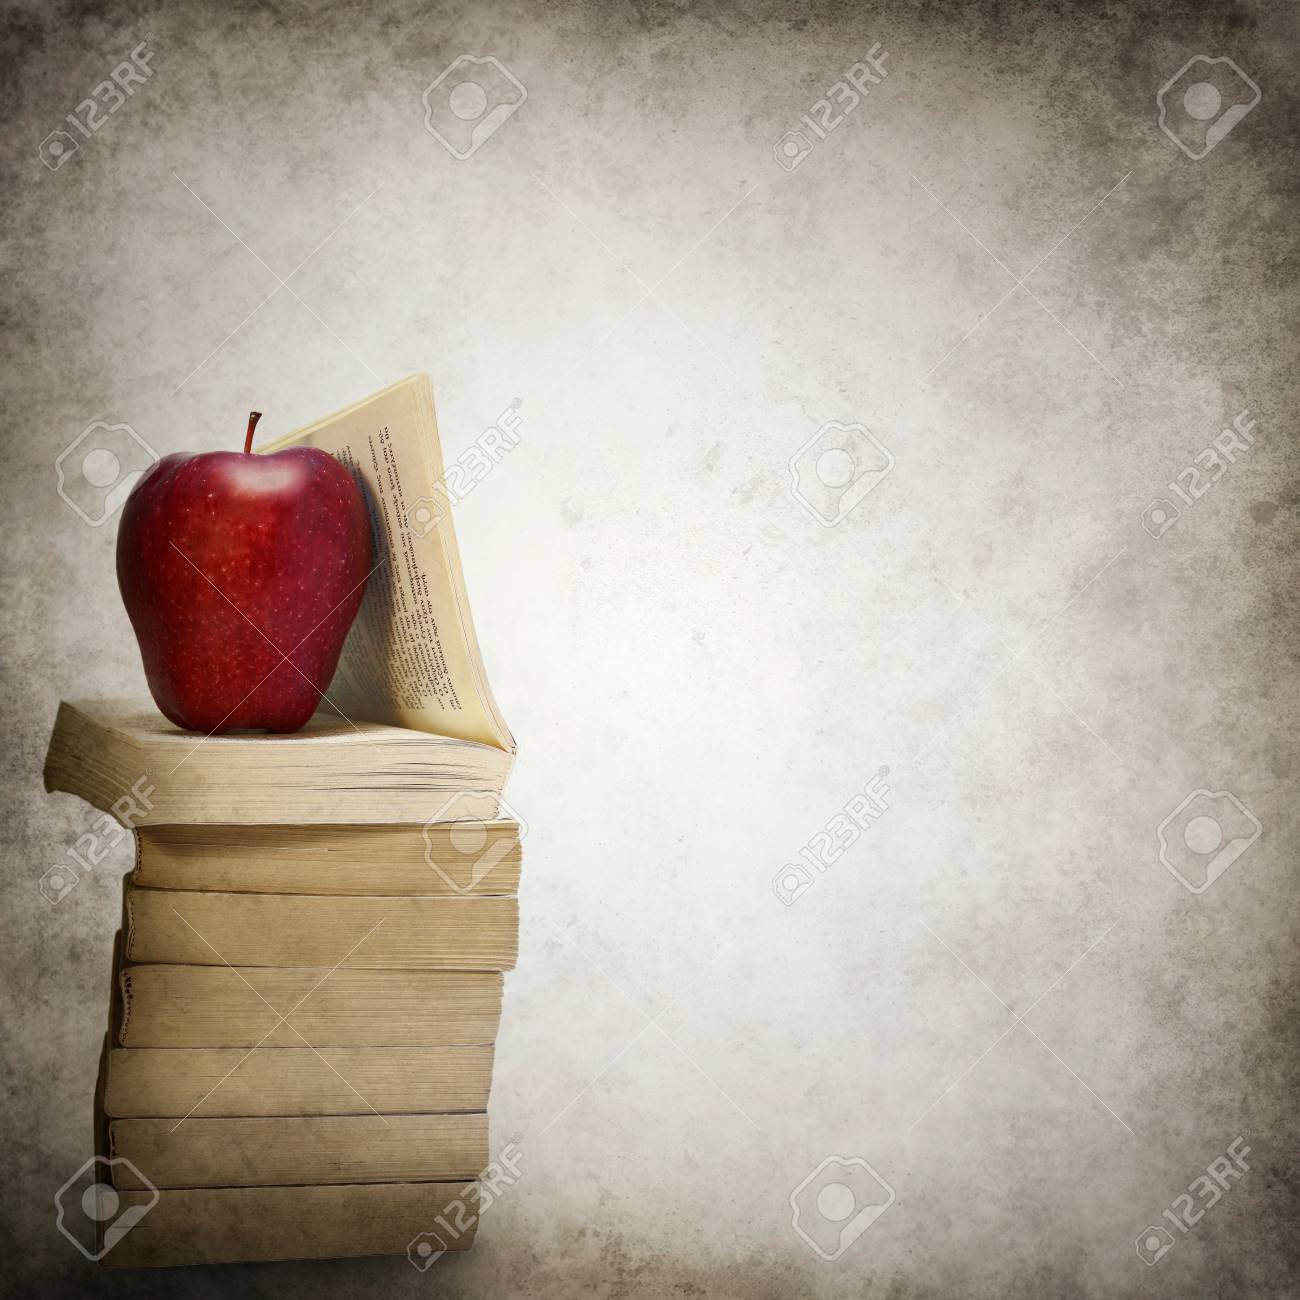 Grunge background with stack of books and red apple Stock Photo - 25131055